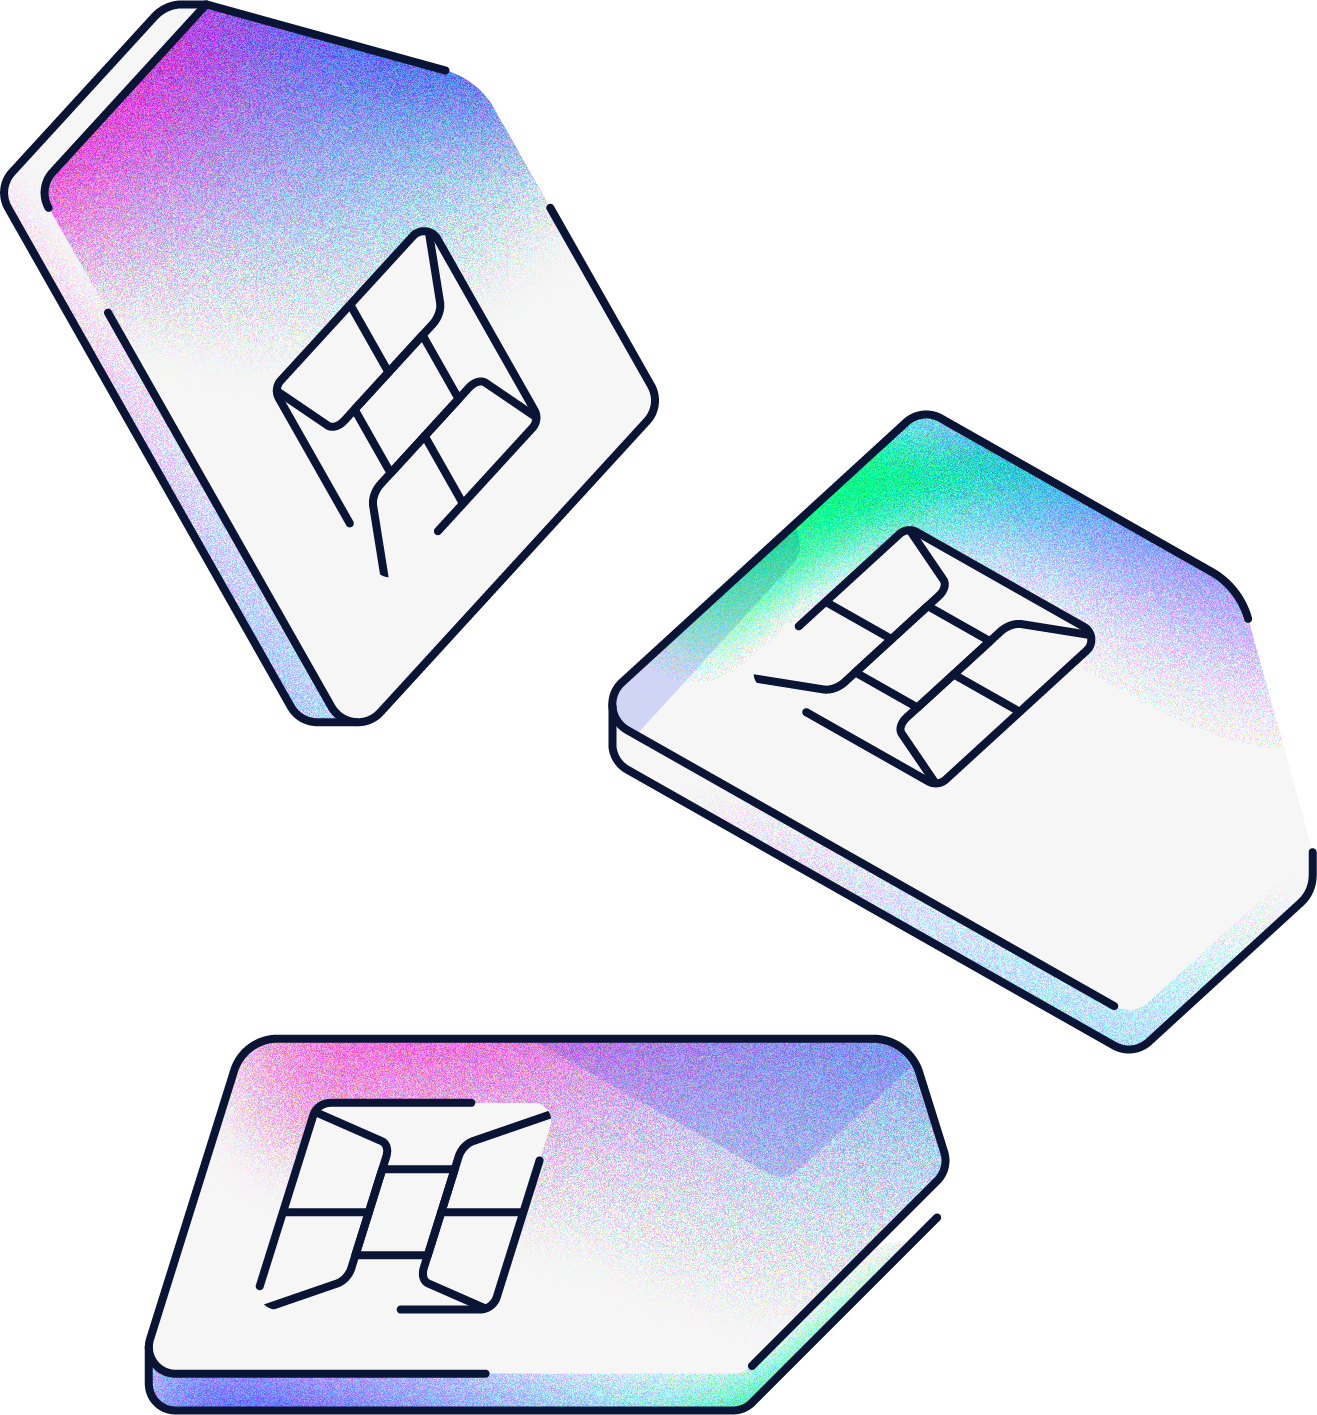 An illustration of three SIM cards floating next to each other